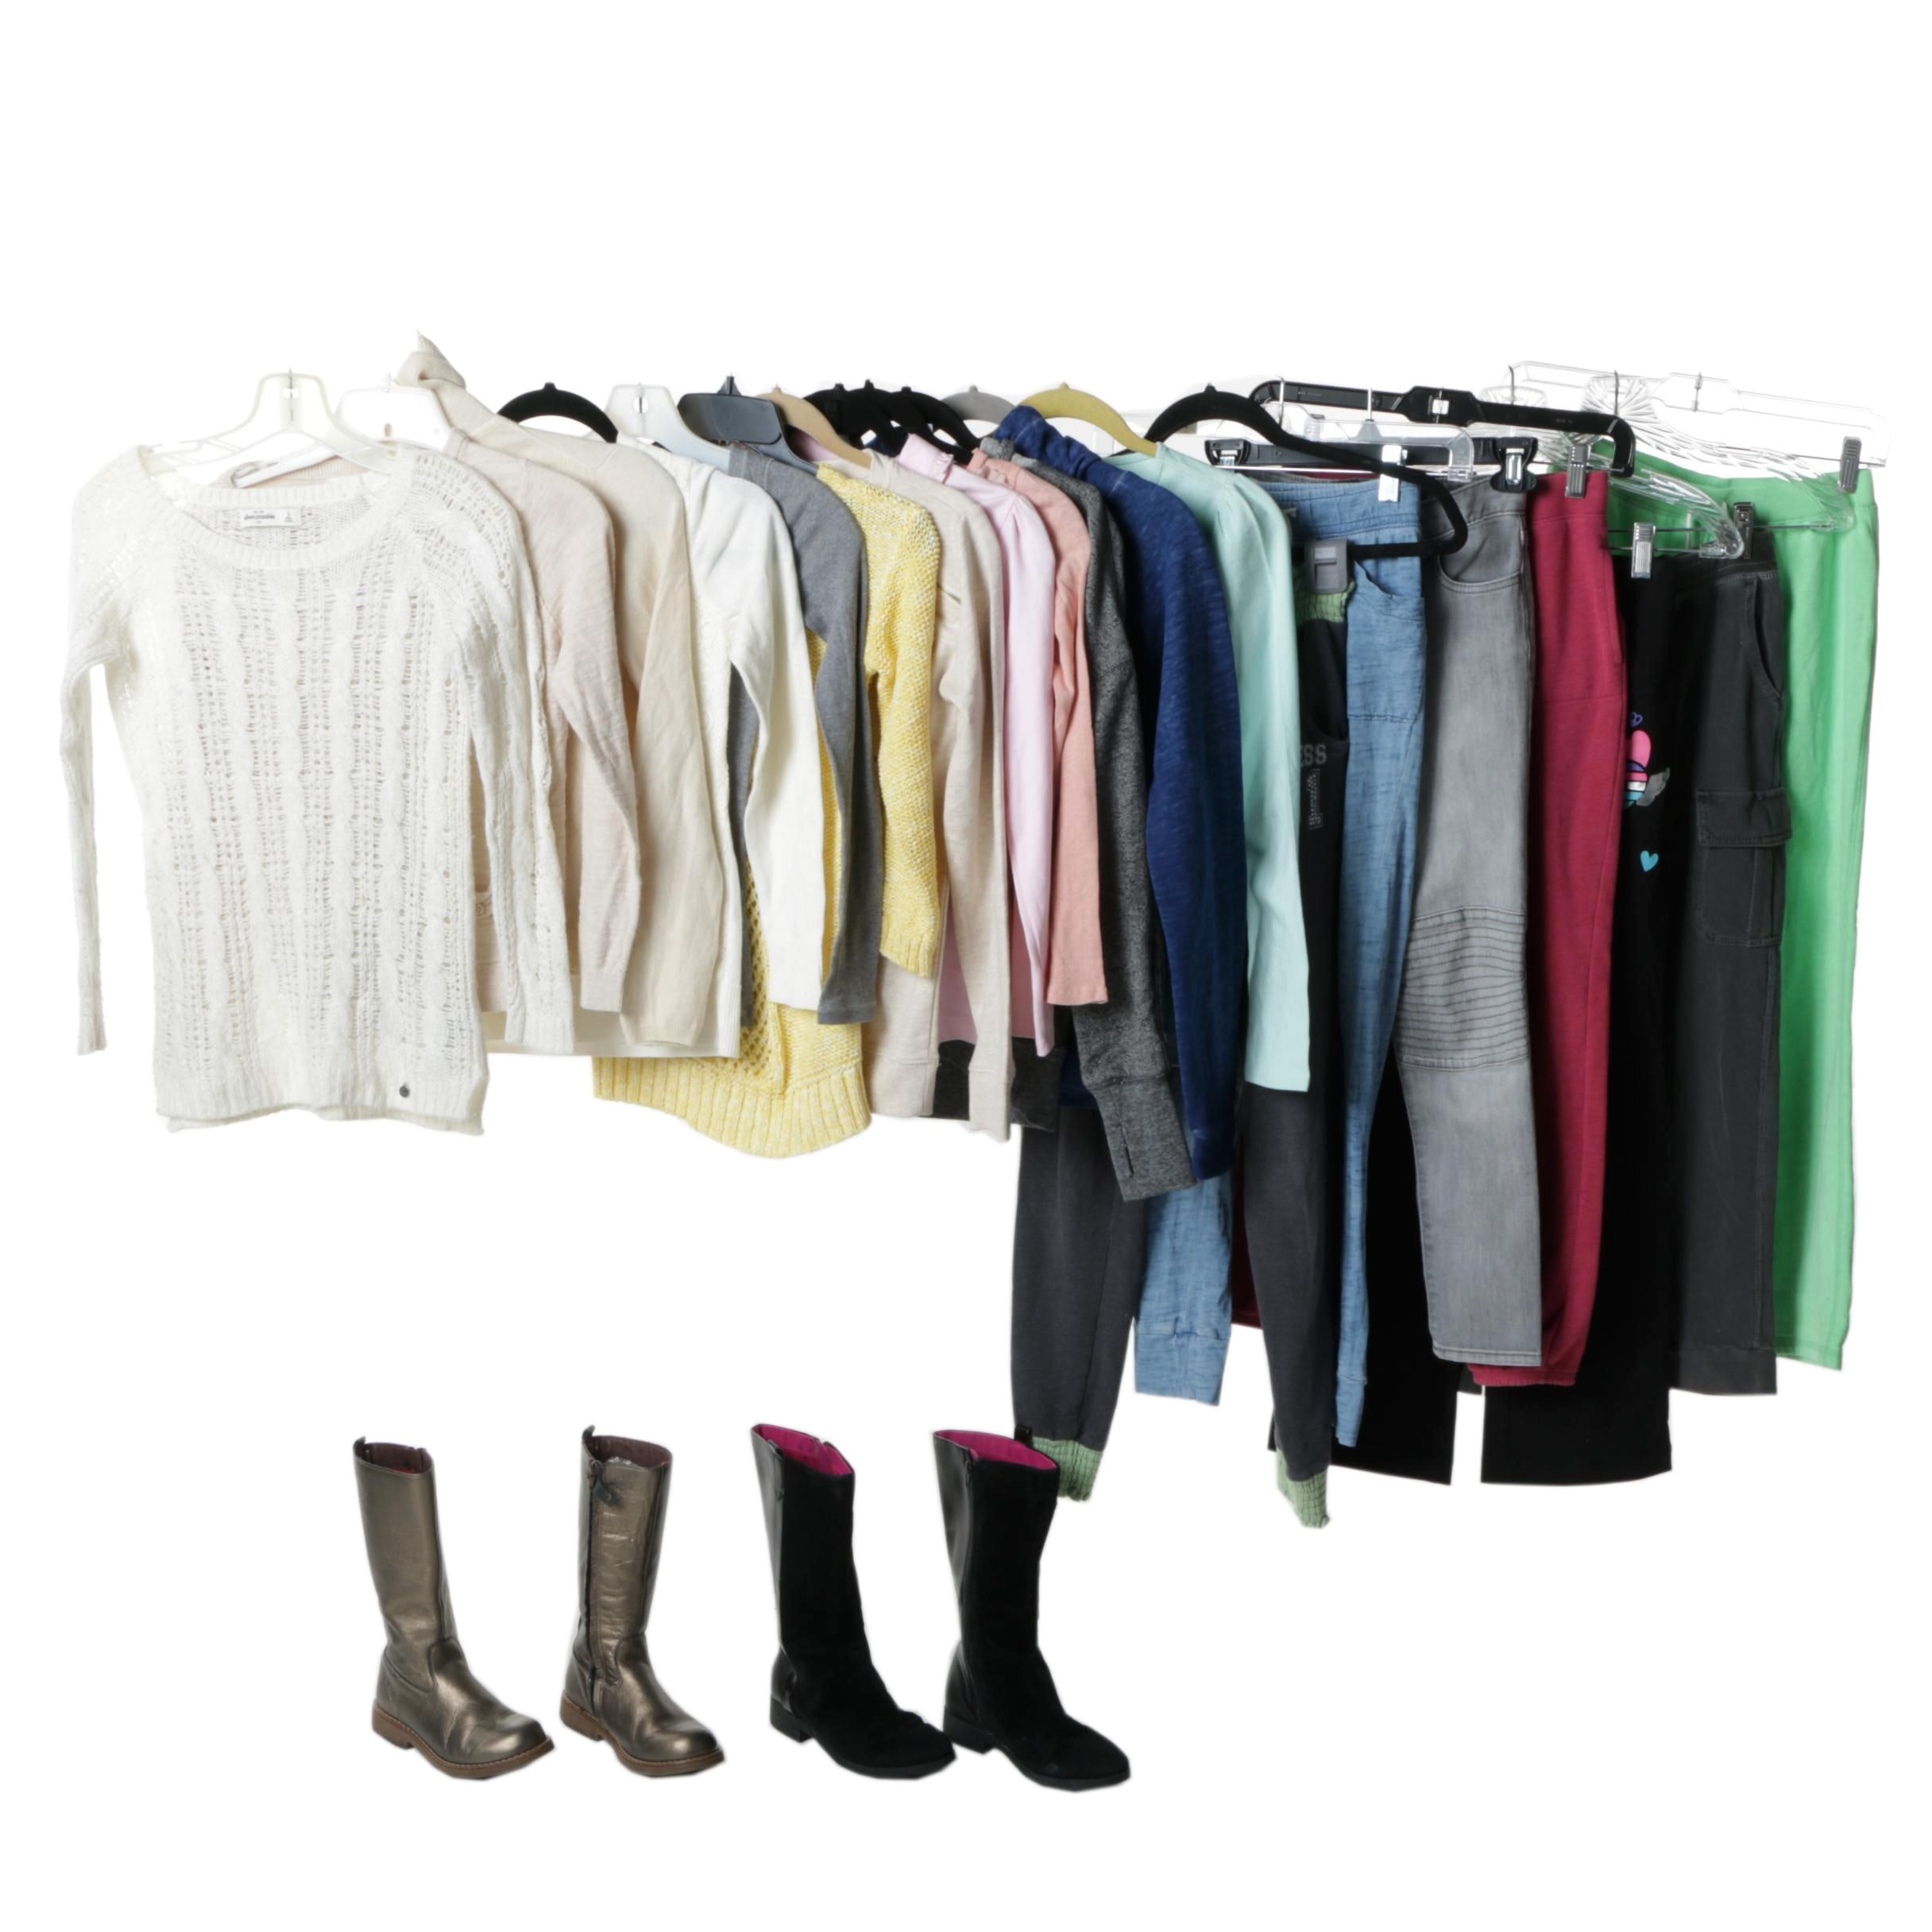 Girls' Clothing and Footwear Including GapKids and Abercrombie Kids